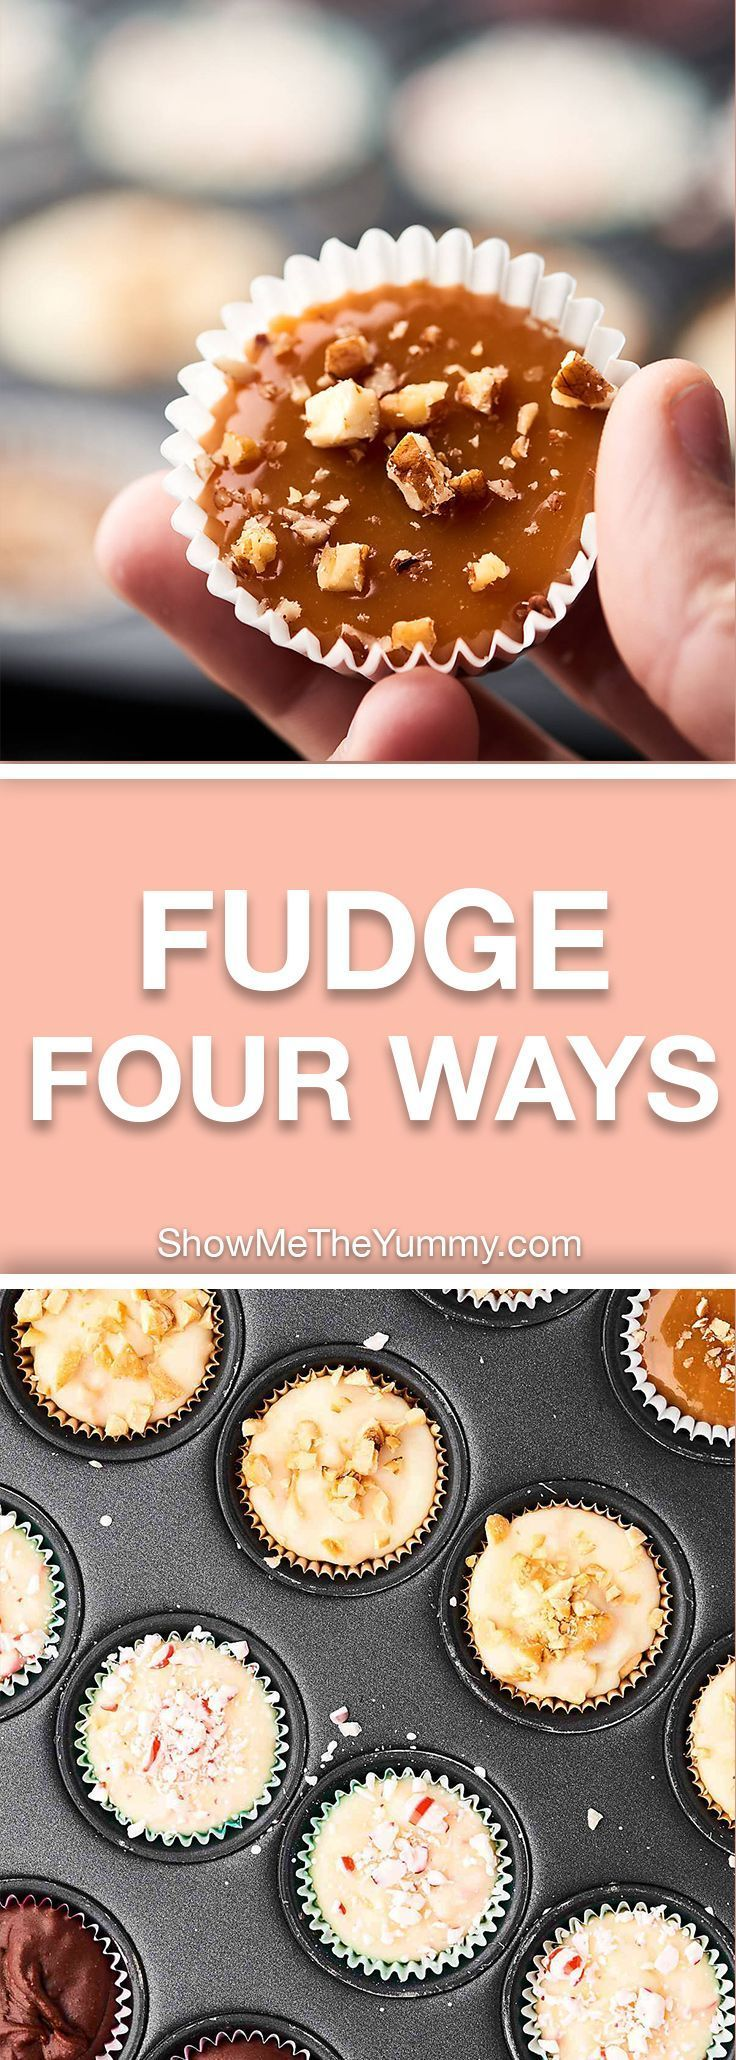 This Easy Microwave Fudge Recipe can be made into FOUR different flavors: peppermint, chocolate, turtle, and maple! Made in a mini muffin tin to make the perfect bite sized treats. showmetheyummy.com #fudge #christmas